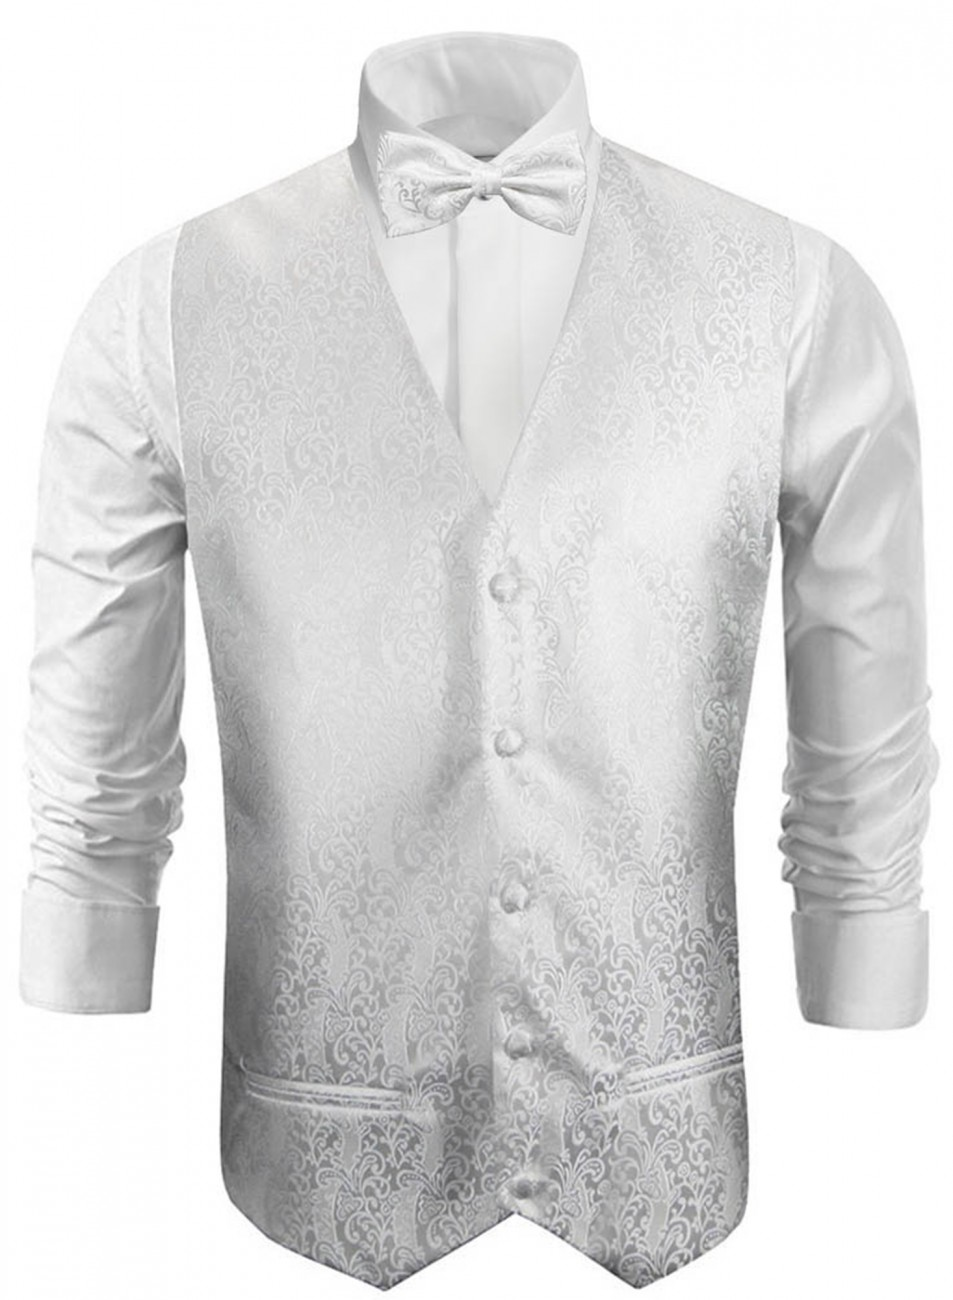 Wedding vest with bow tie uni white barock